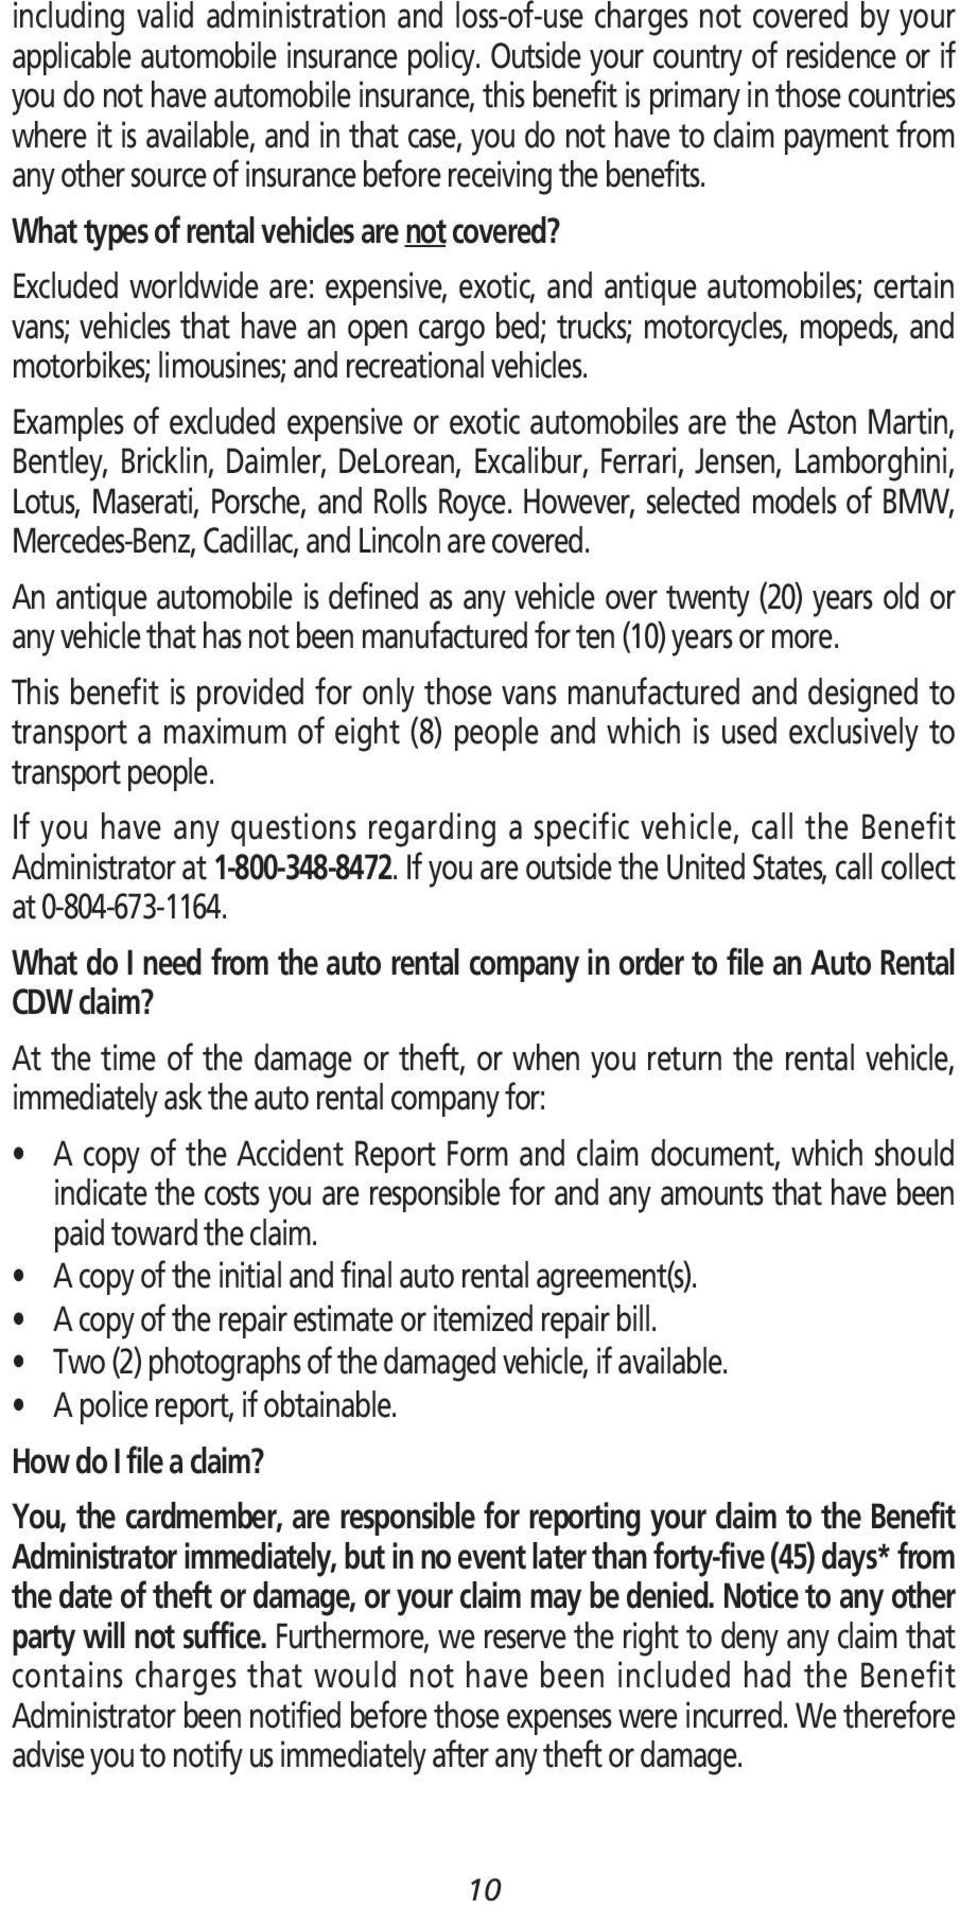 any other source of insurance before receiving the benefits. What types of rental vehicles are not covered?